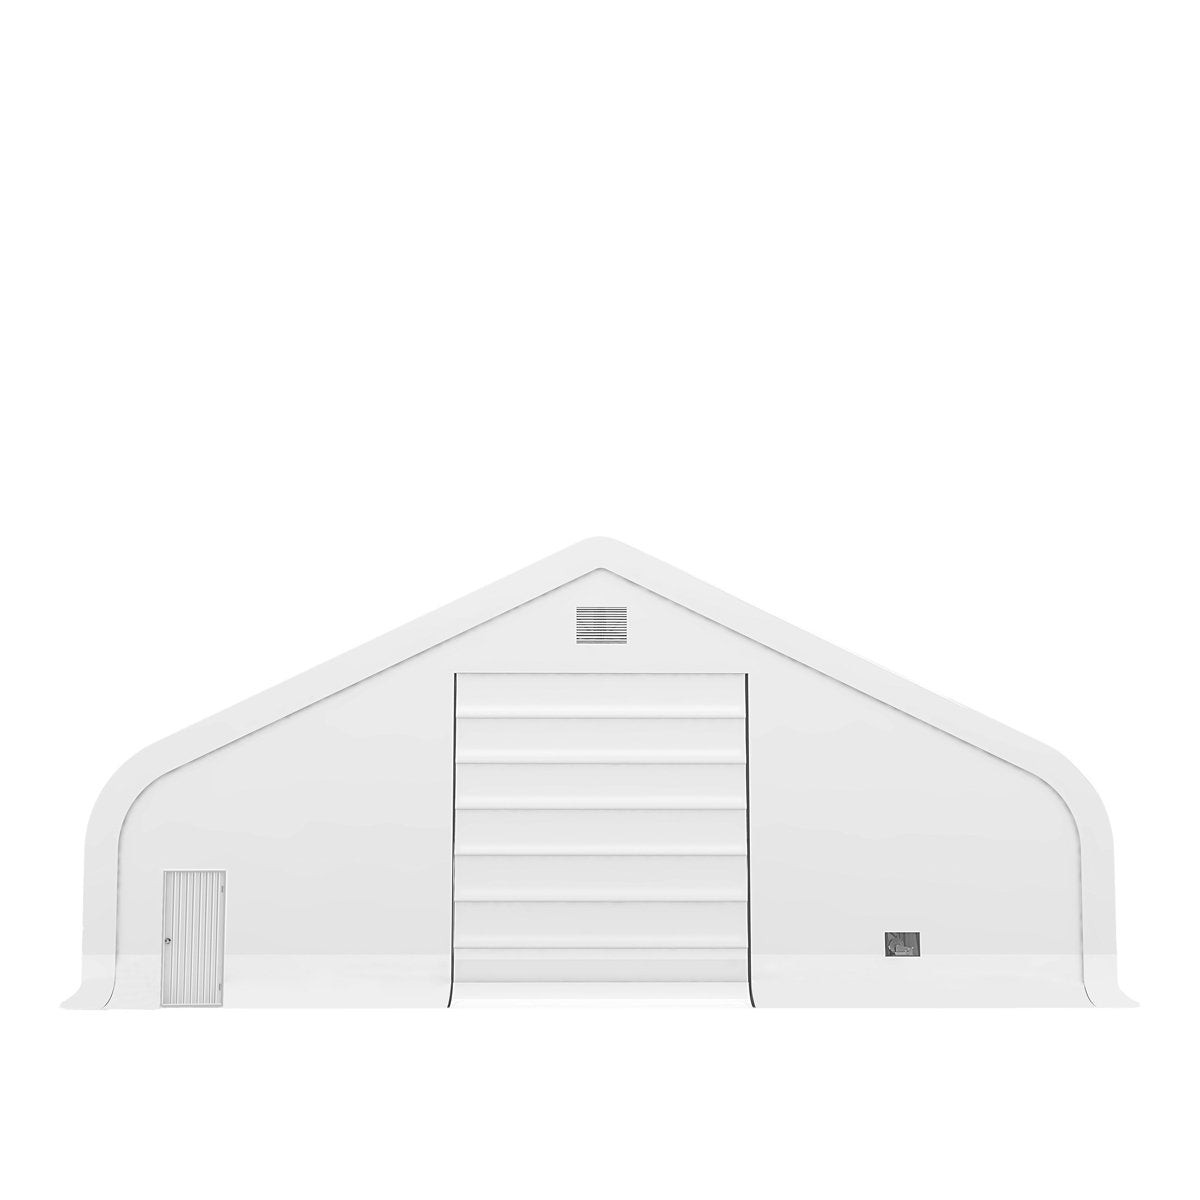 Pro Series 50' x 80' Dual Truss Storage Shelter with Heavy Duty 32oz PVC Fabric